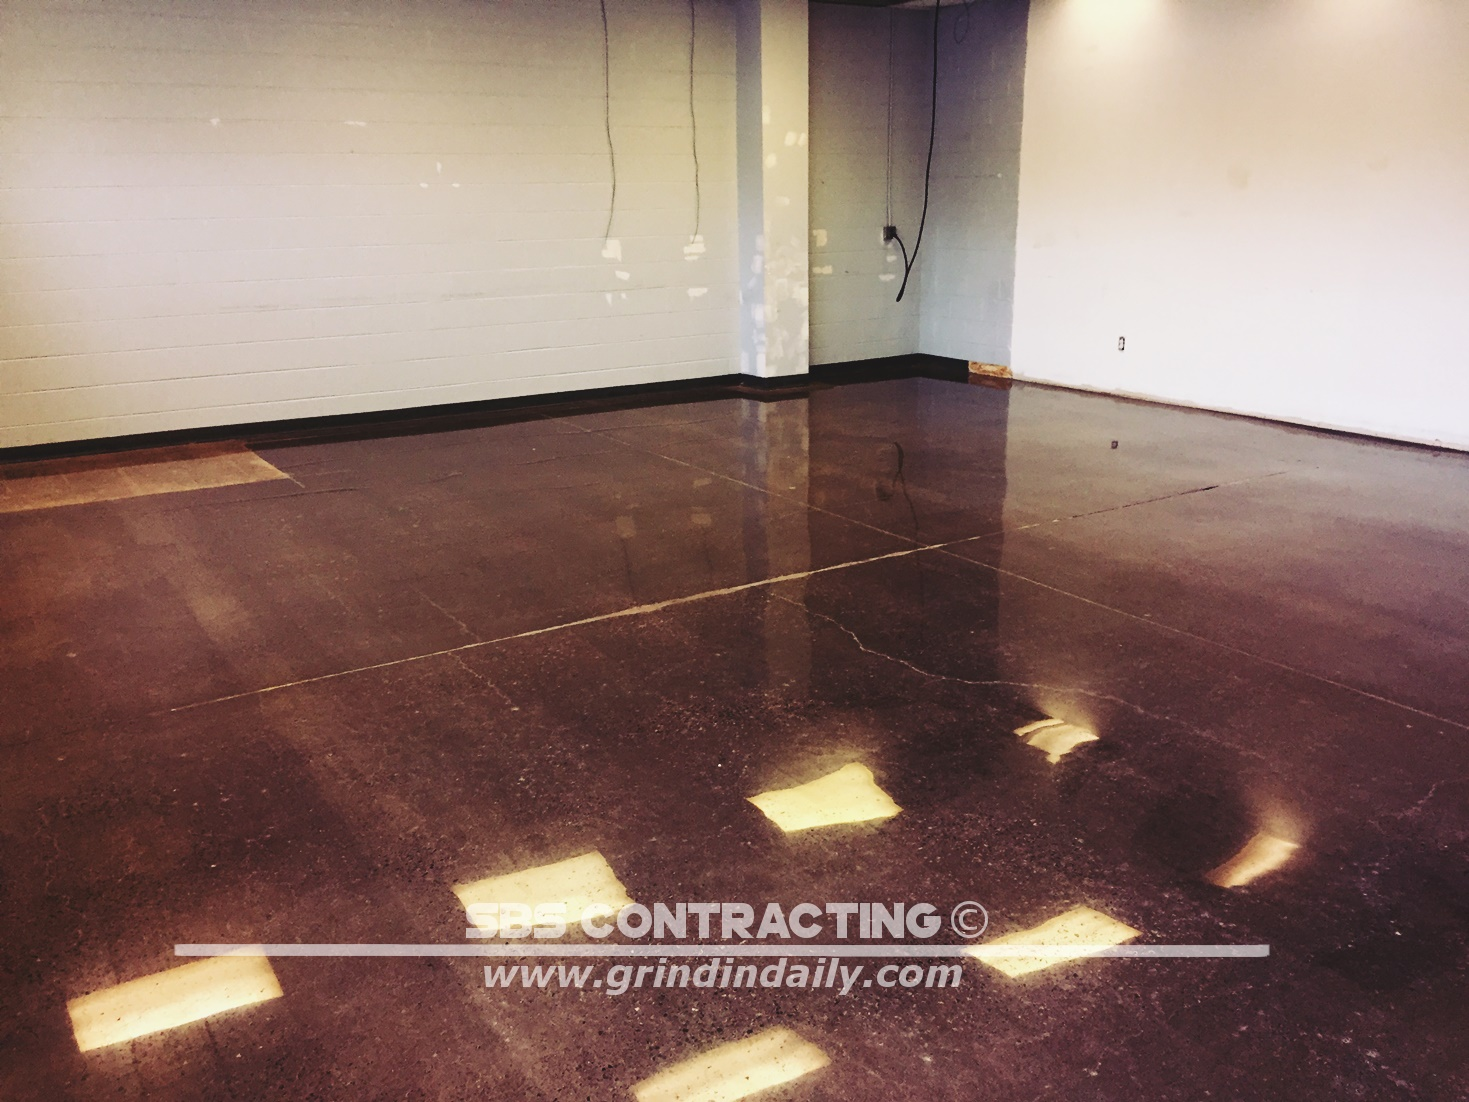 SBS-Contracting-Concrete-Polish-Project-08-02